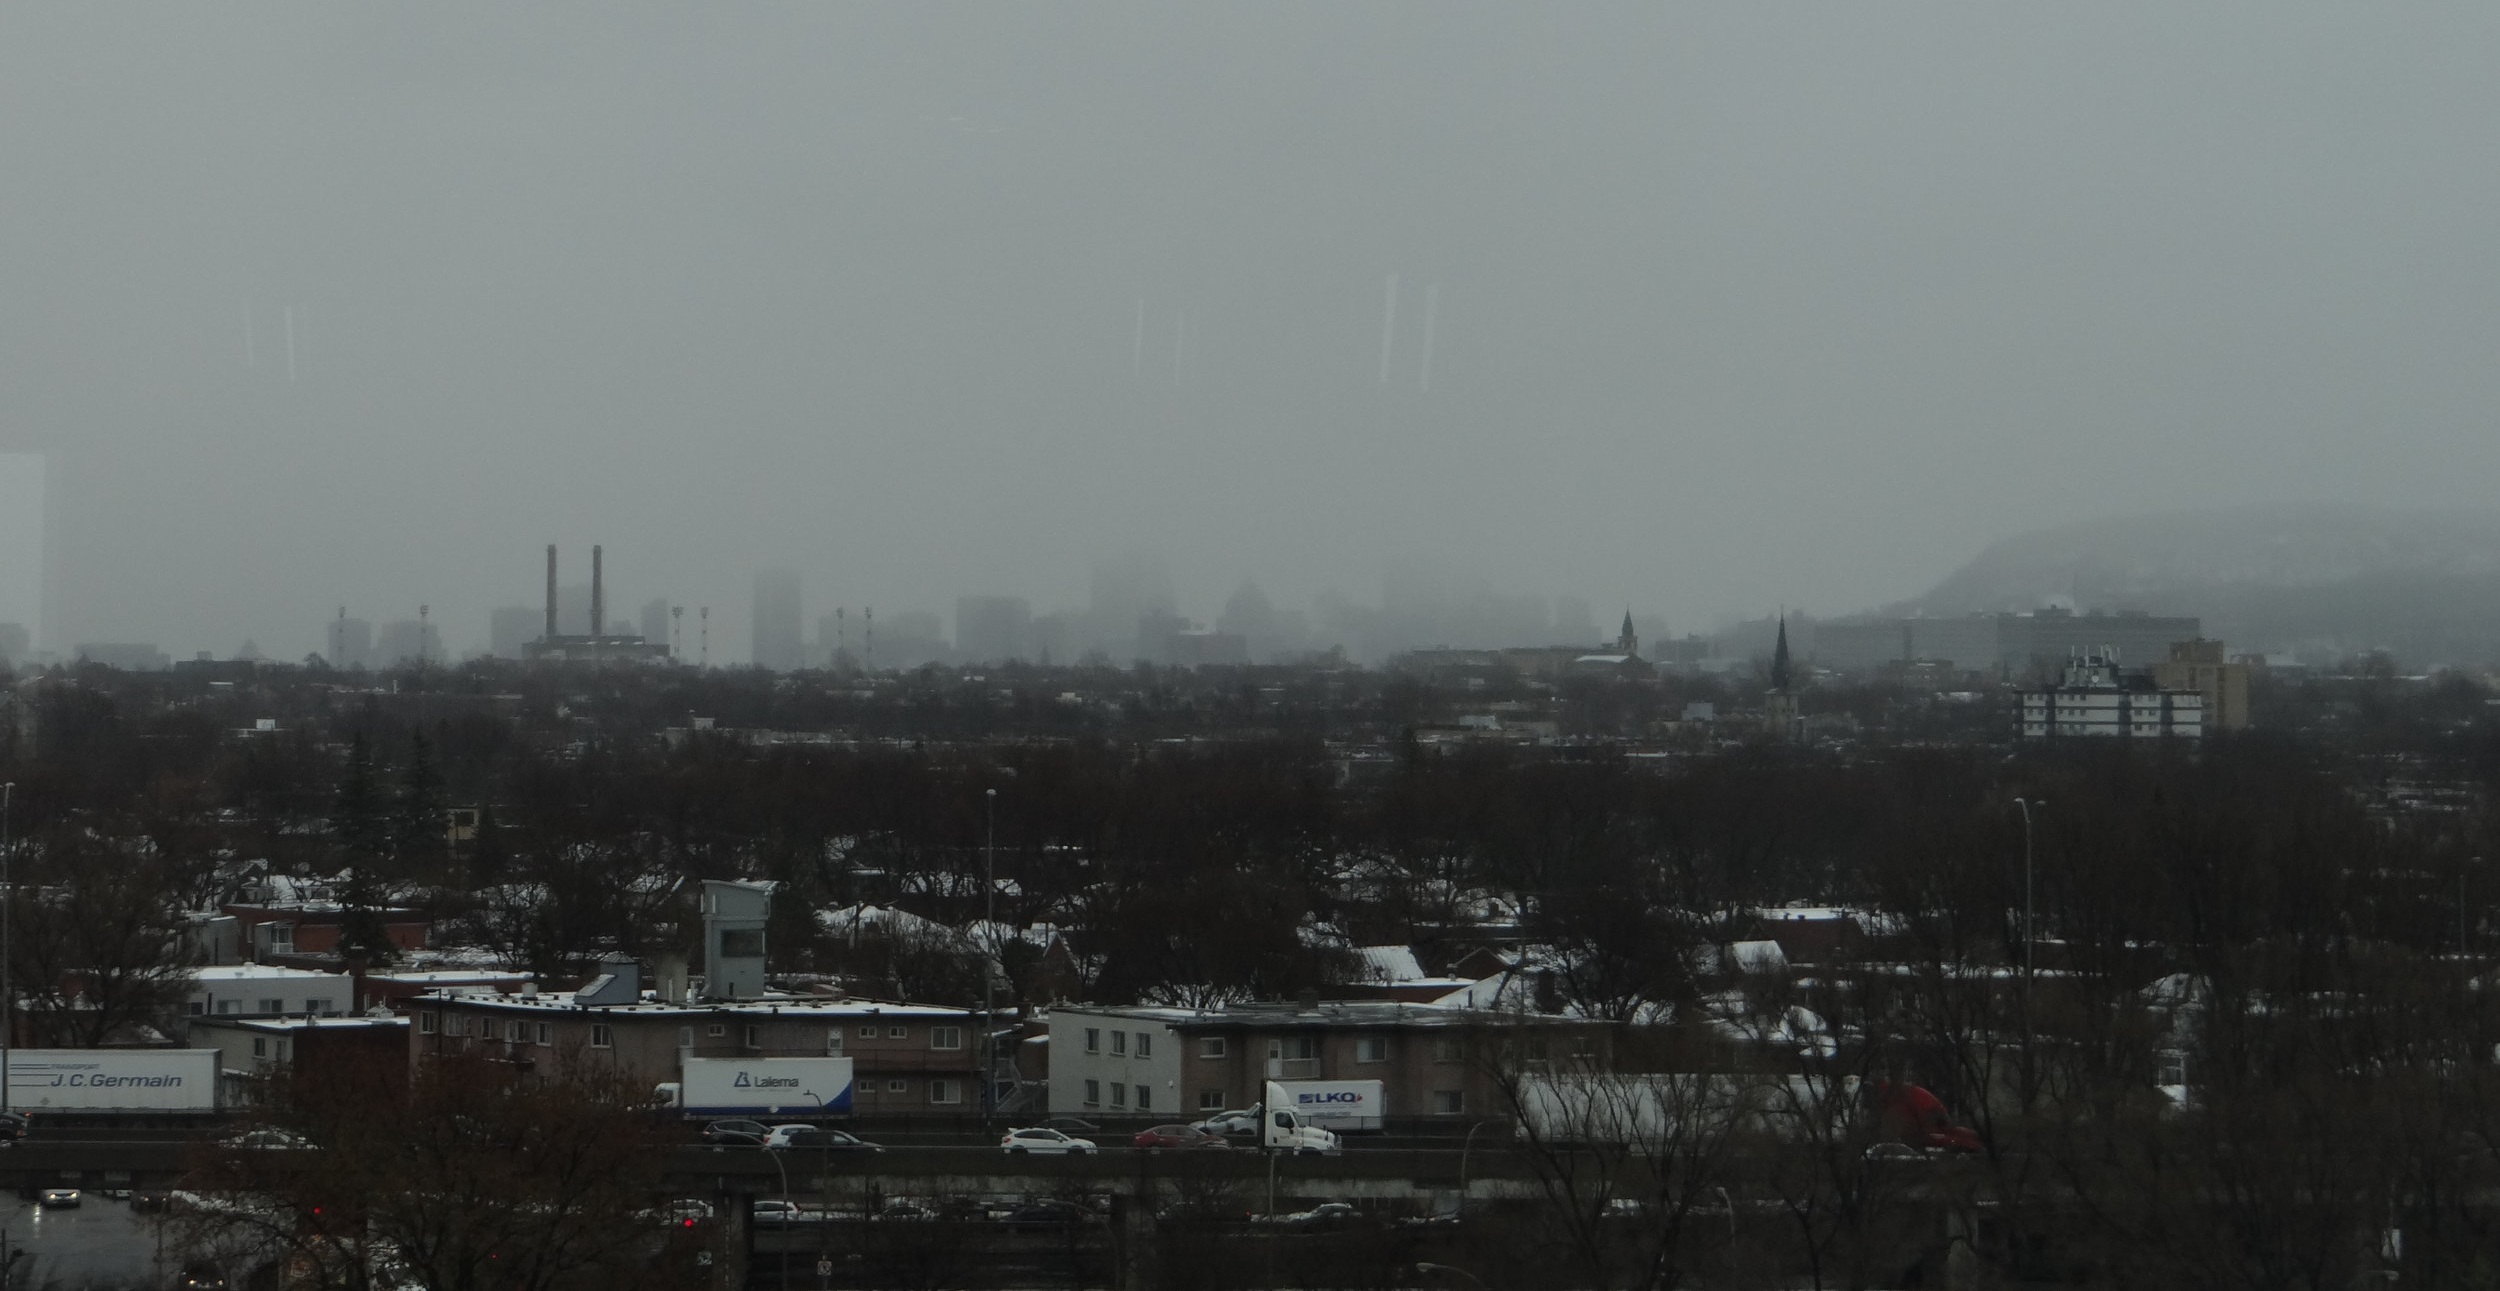 It was a wintry morning when we visited the Cirque du Soleil's HQ. Here the view from the conference room, with downtown Montréal and the hill that gives its name to the city (to the right)